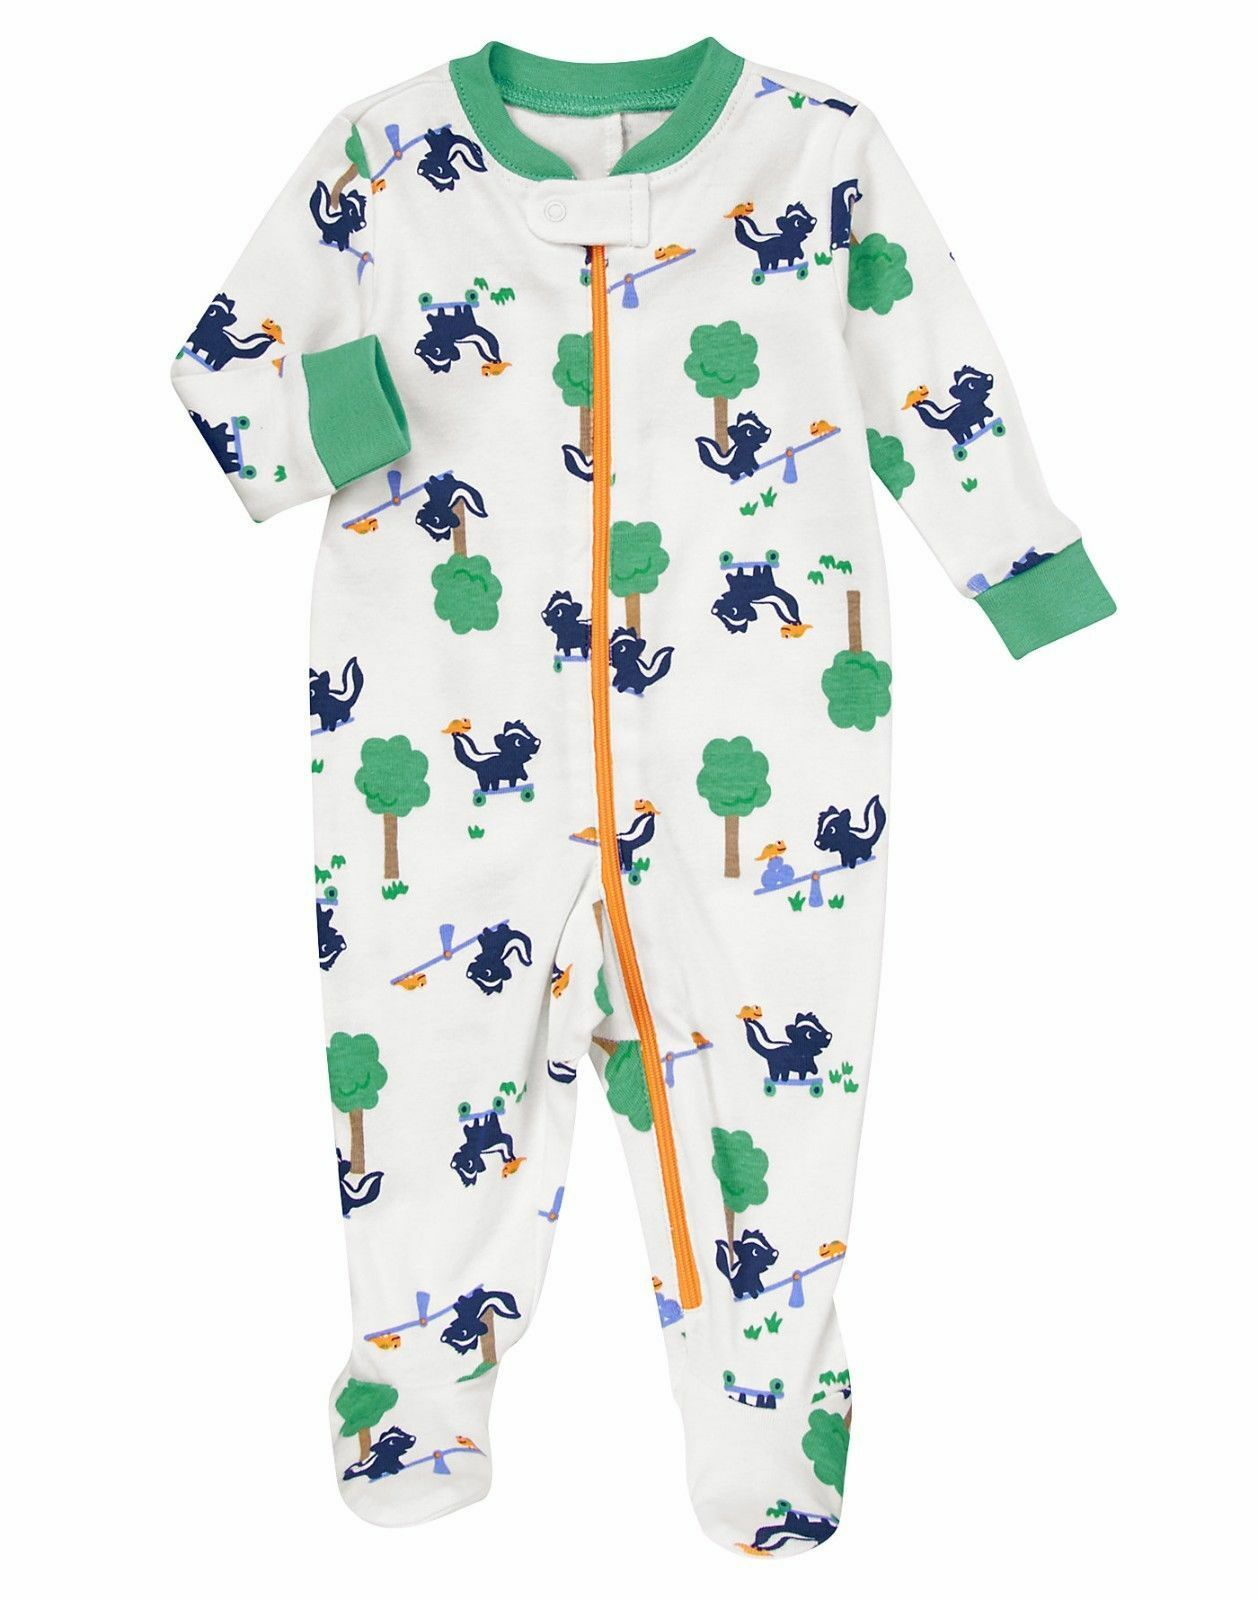 NB new too choose Gymboree baby boys slip n Play footed up to 5lb 5-9 LB